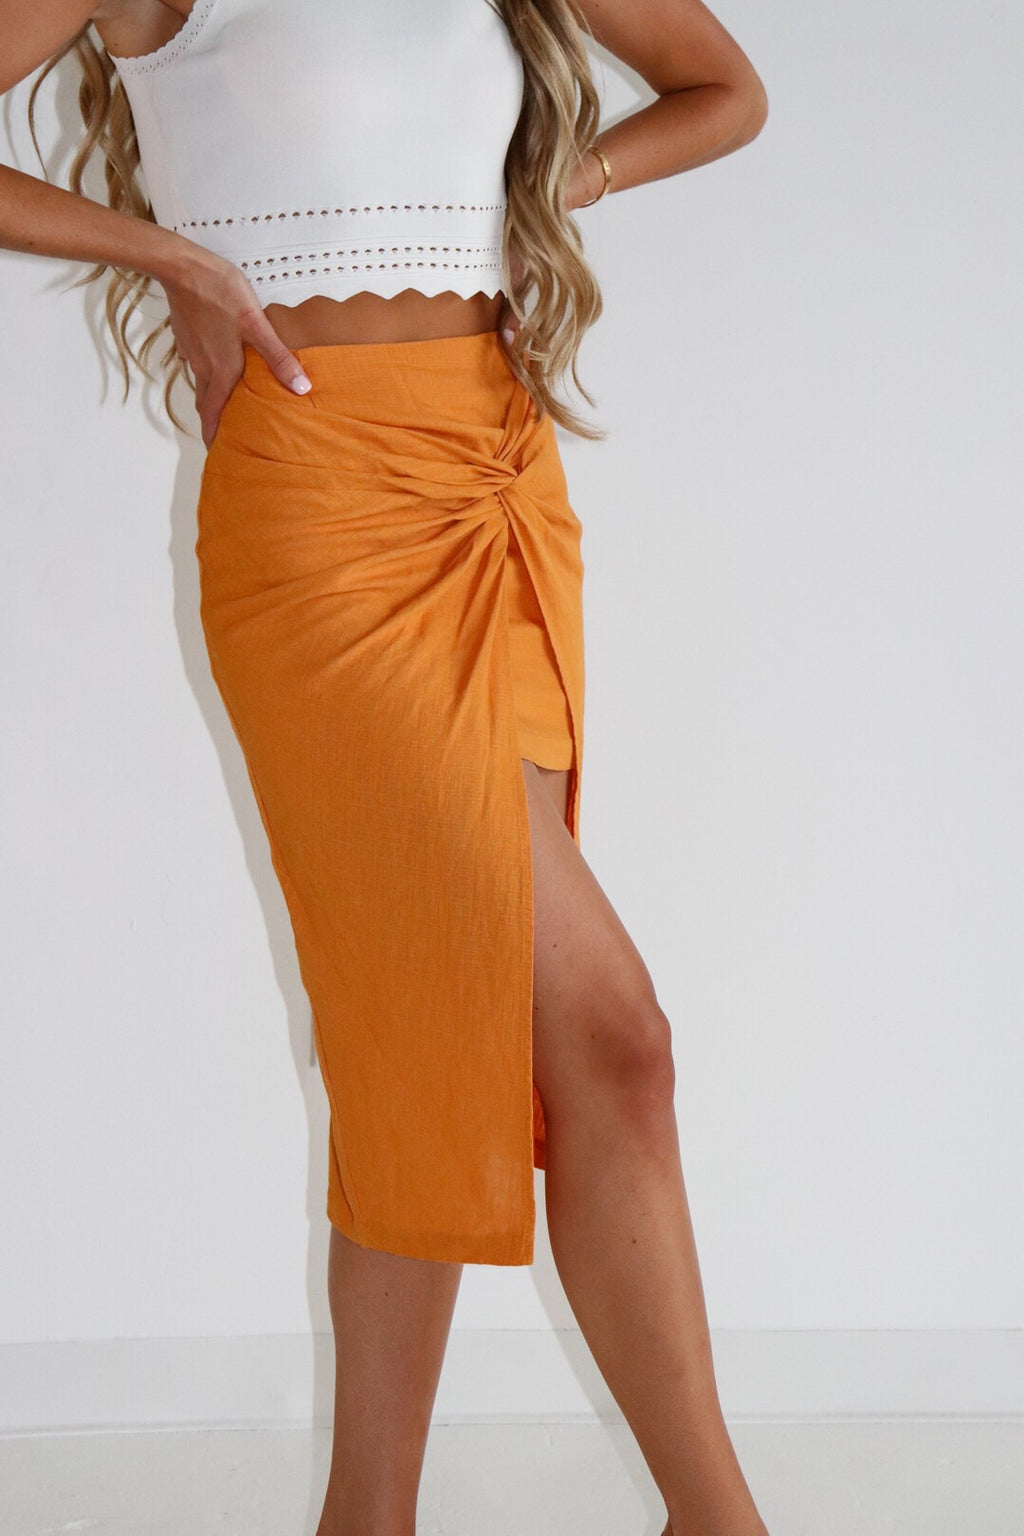 RESTOCKED - Nova Hi Low Twist Skirt